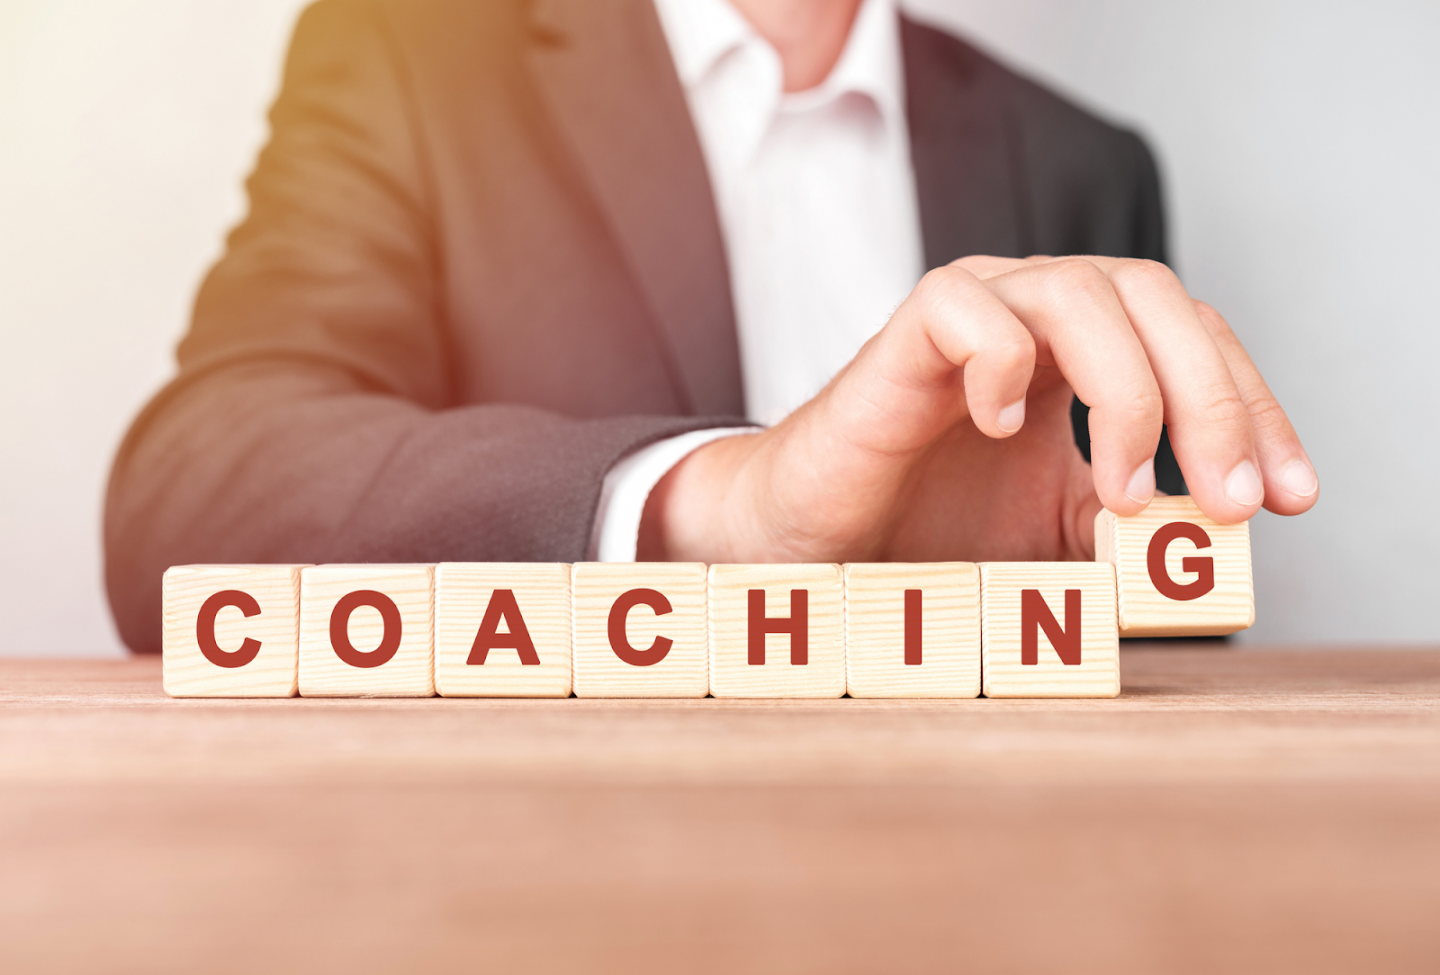 I NEED A LIFE COACH: 4 REASONS WHY A LIFE COACH IS BENEFICIAL